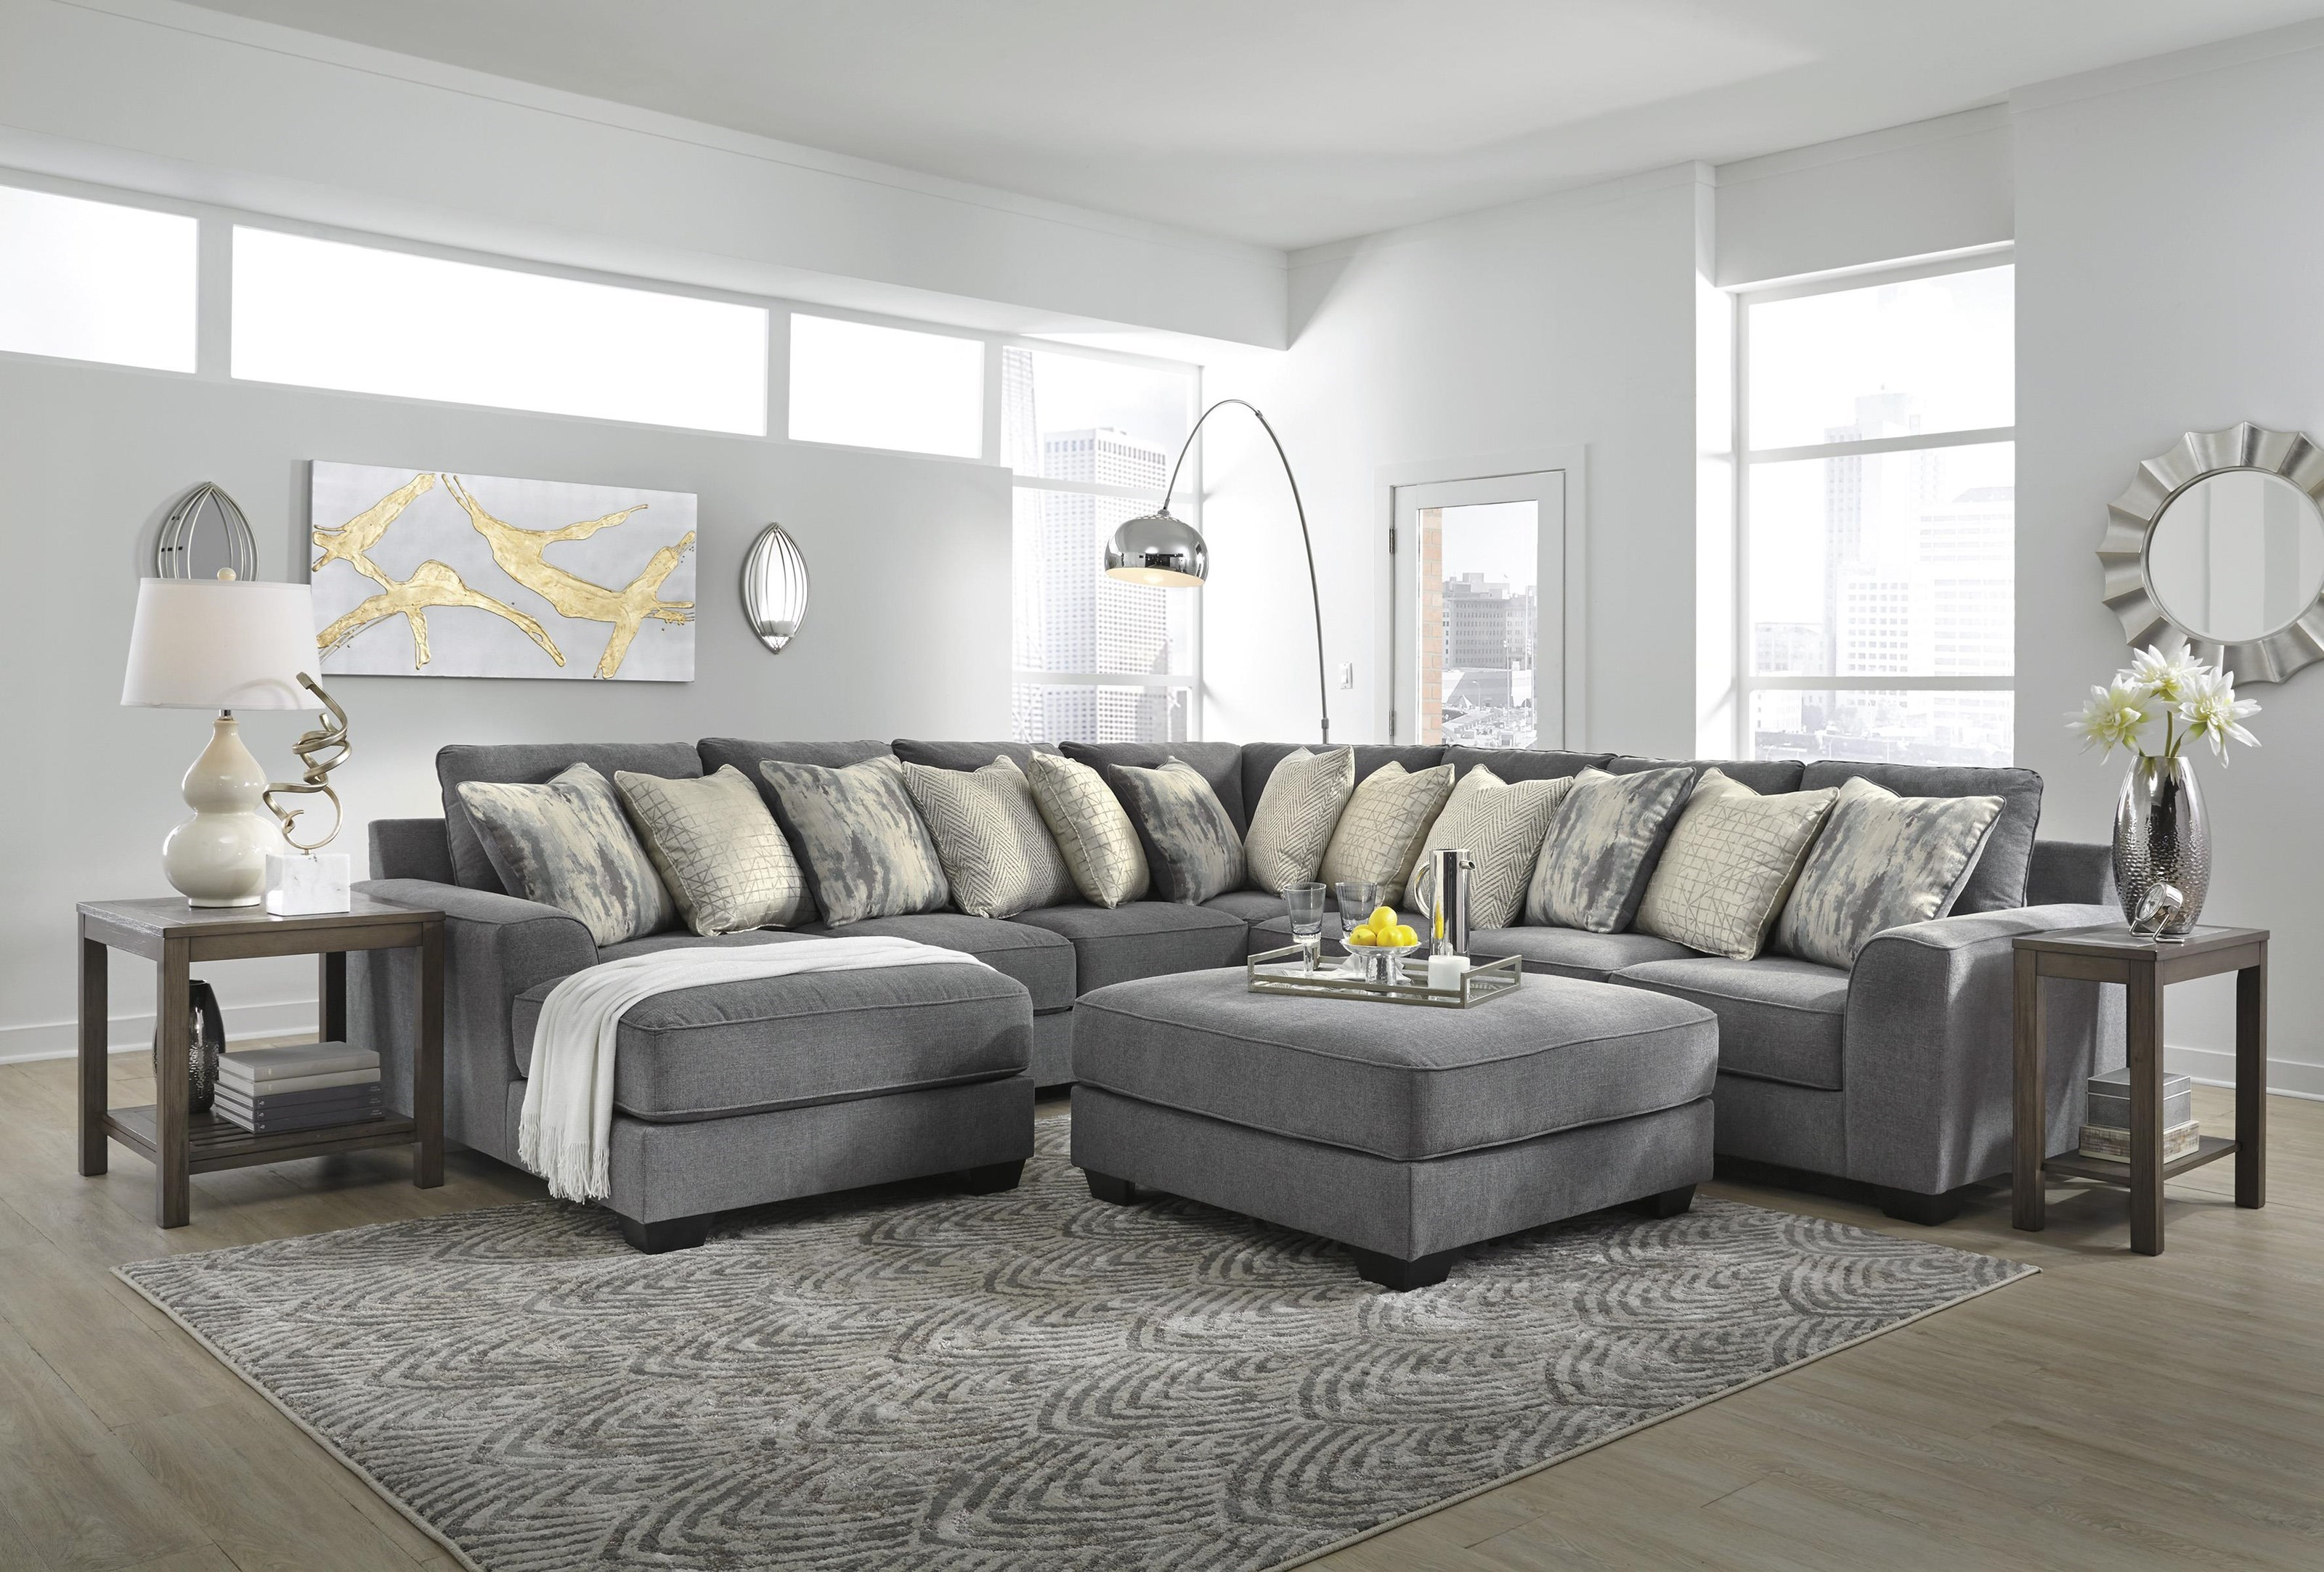 Castano 4 Piece Sectional With Ottoman